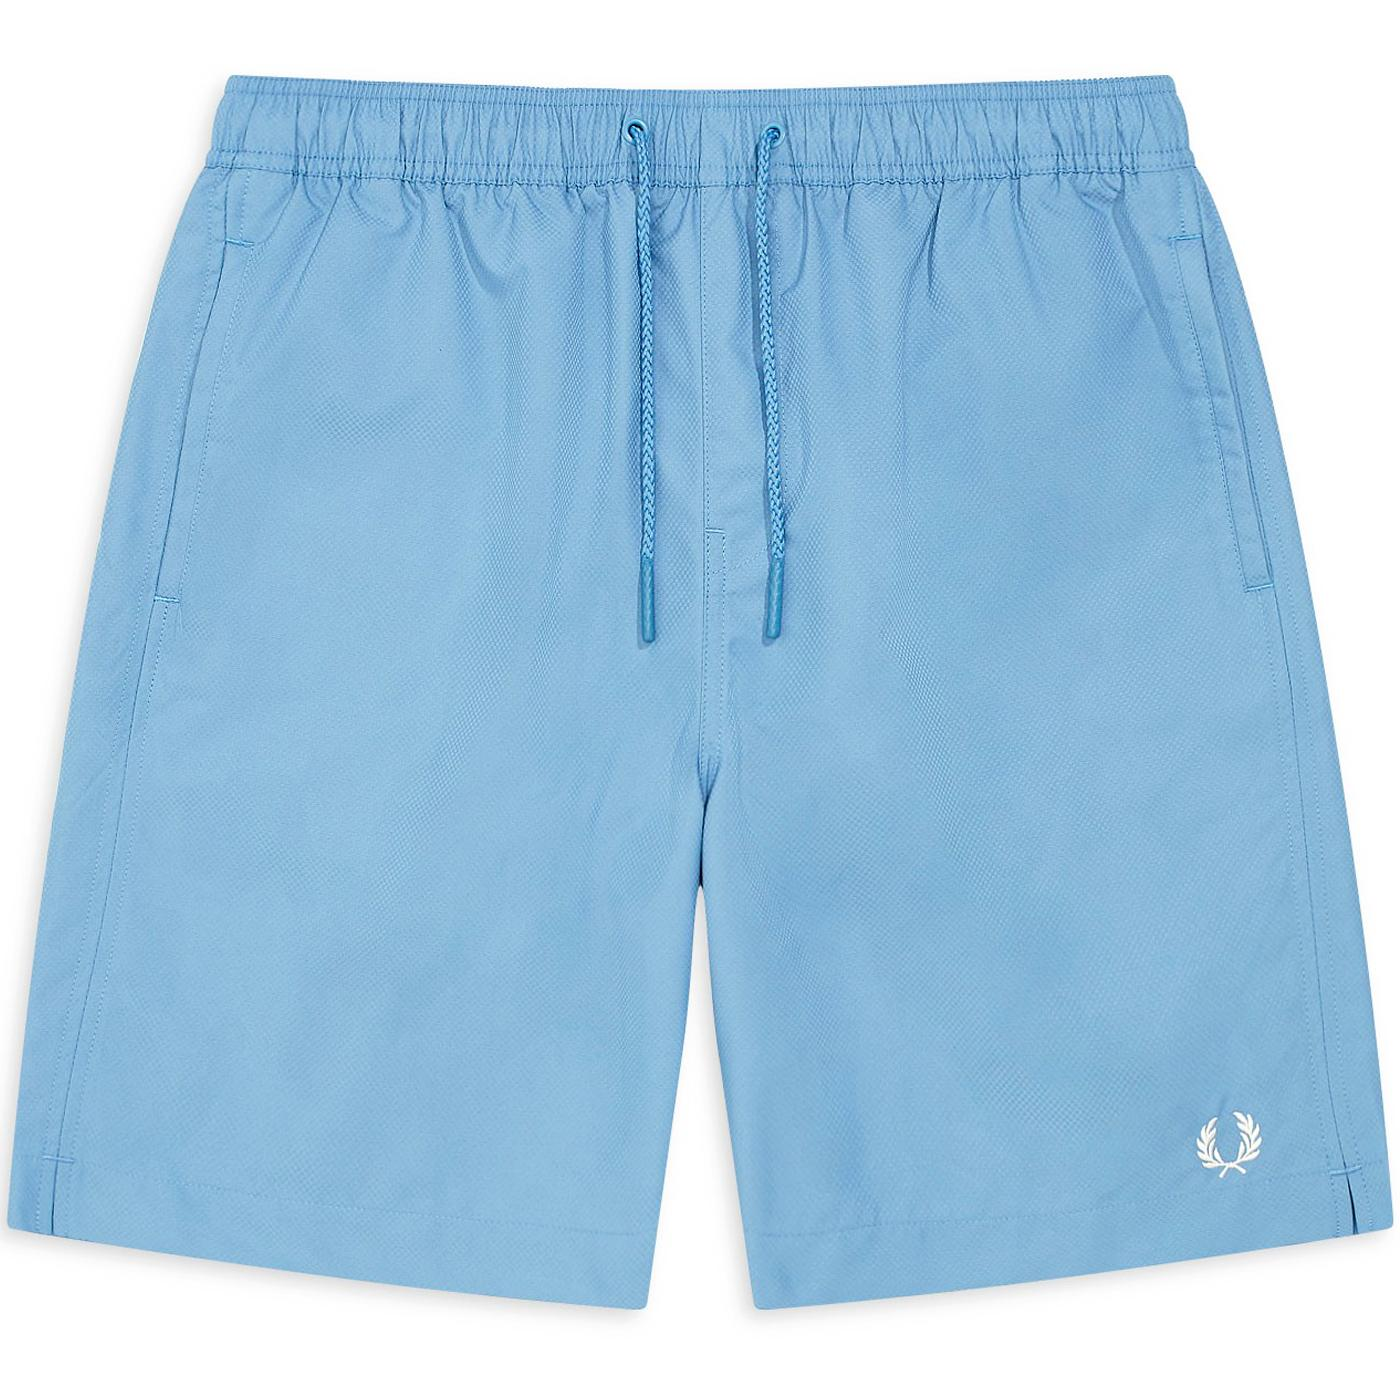 FRED PERRY Retro Textured Swim Shorts (Riviera)